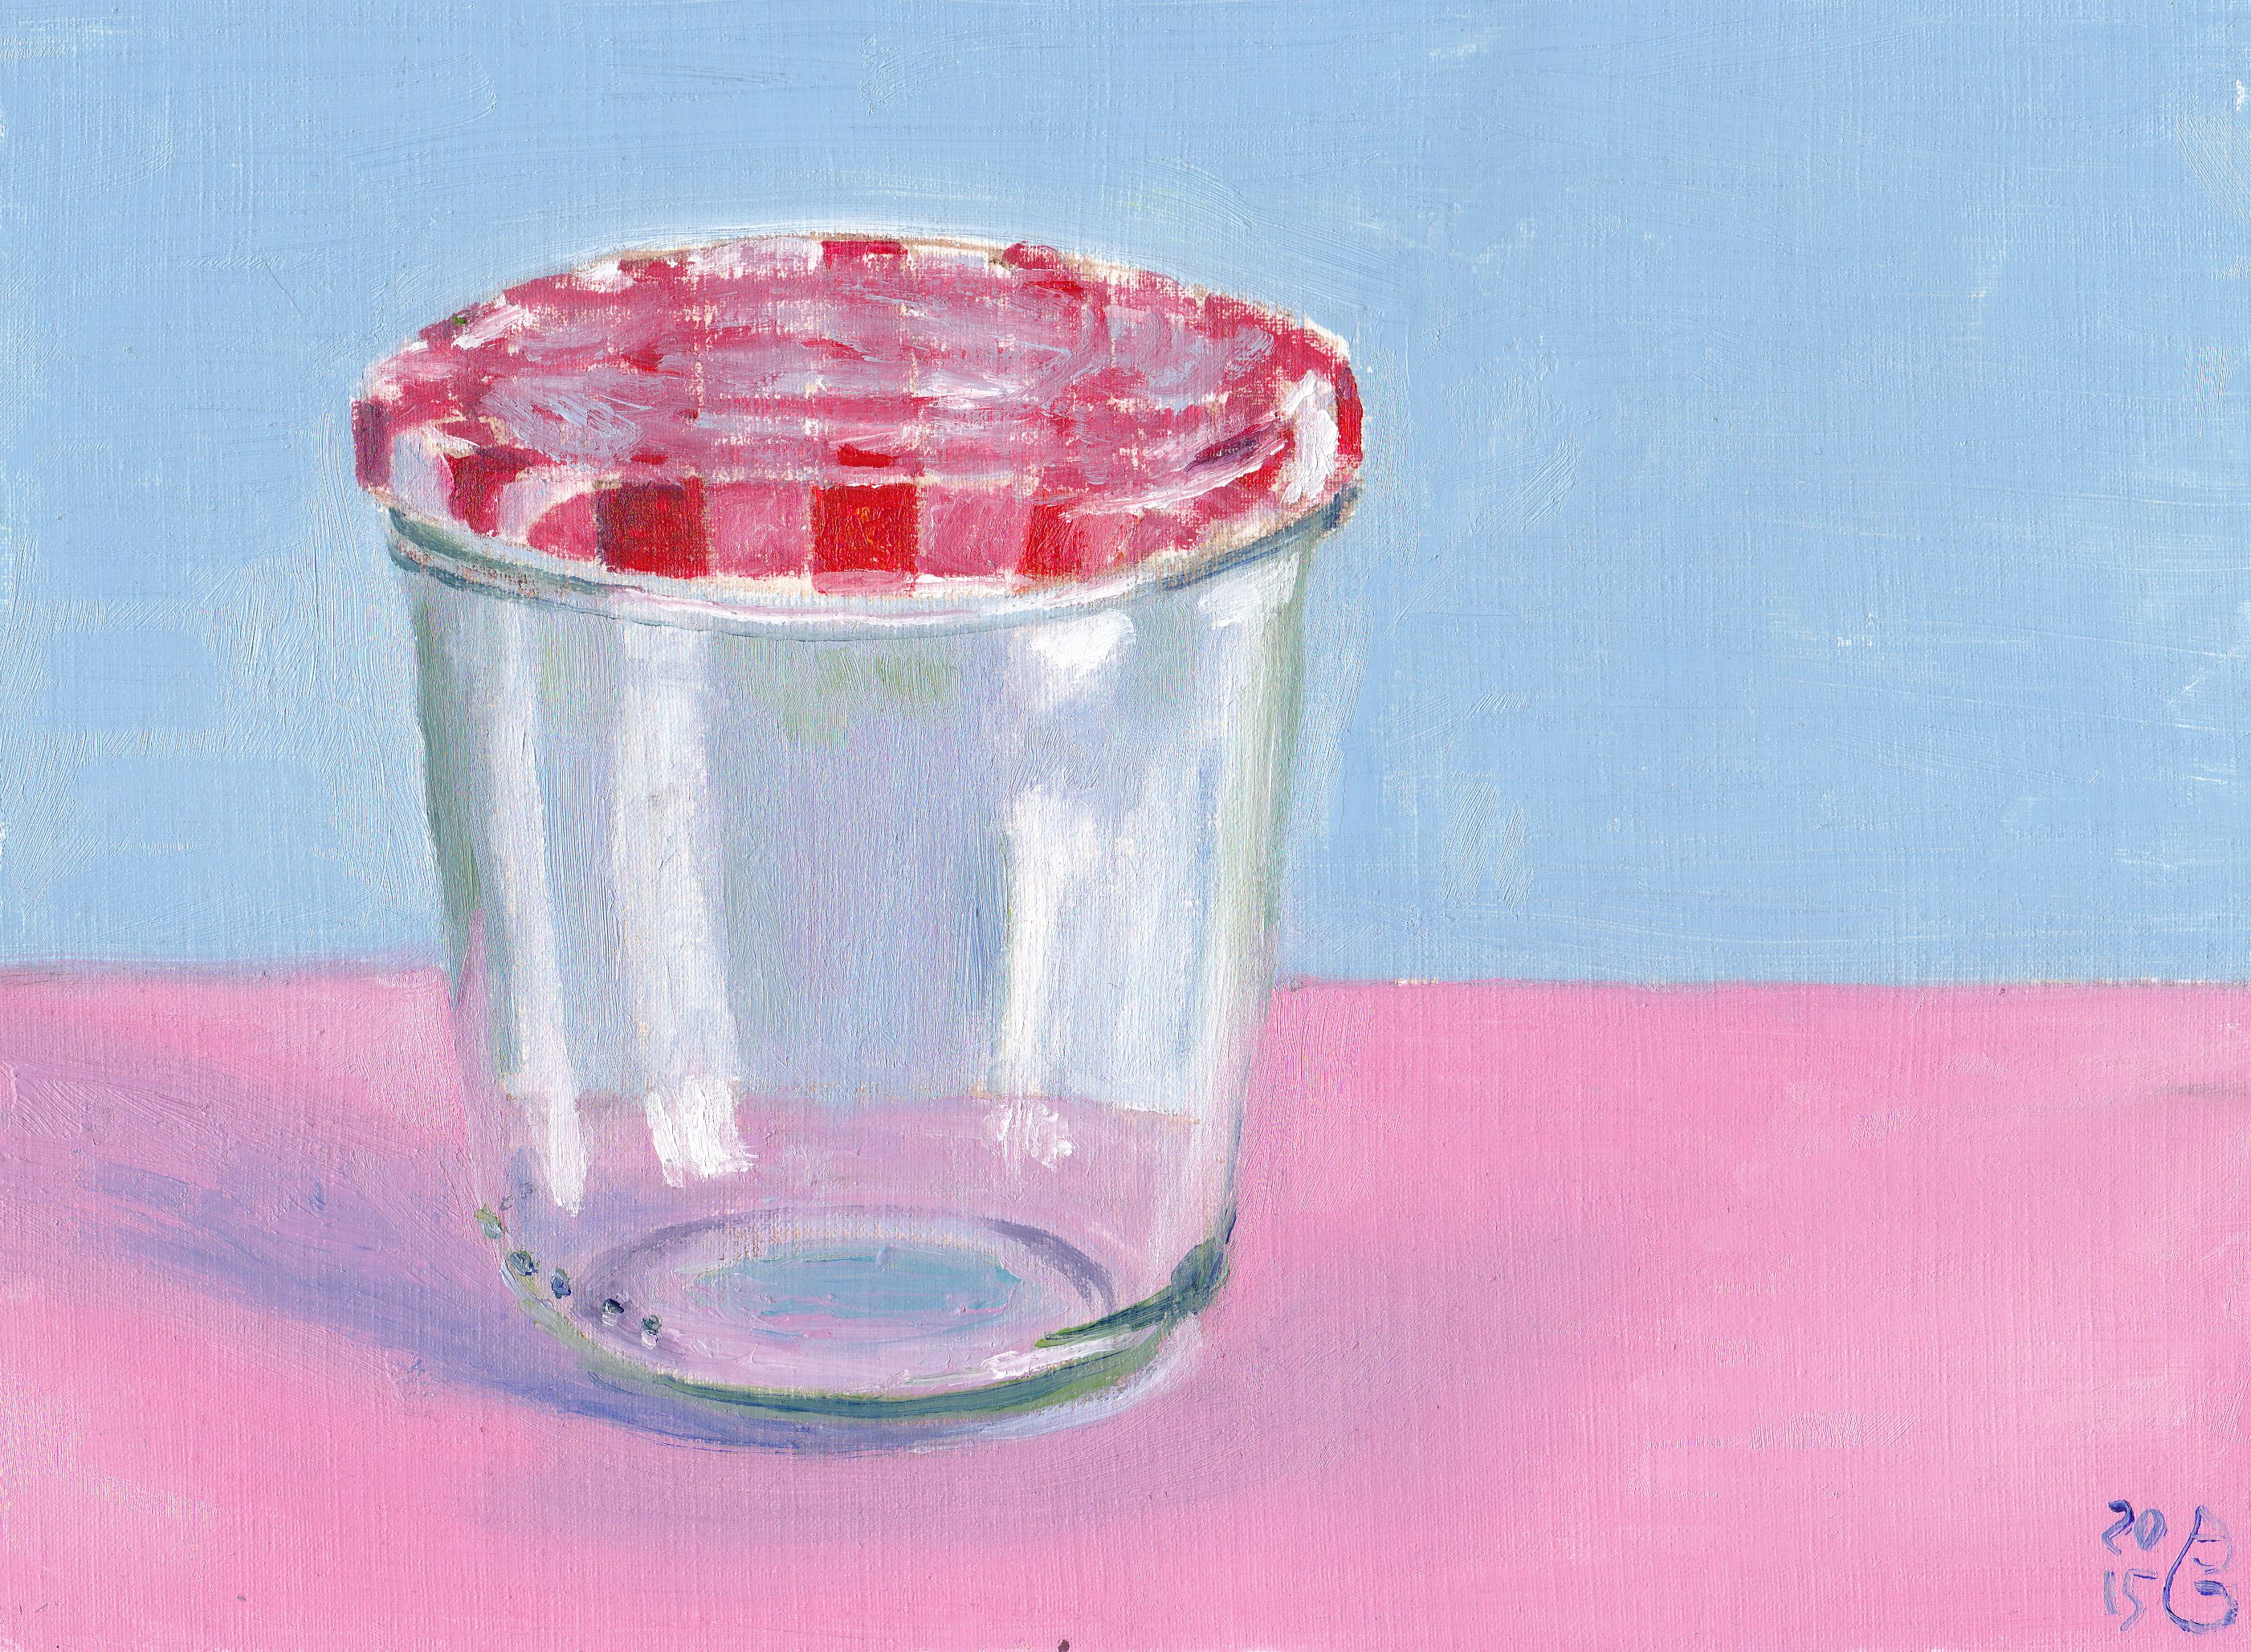 Baby-coloured jar. Öl auf Papier, 18 x 24 cm/ Oils on paper, 7 x 9.4 in.